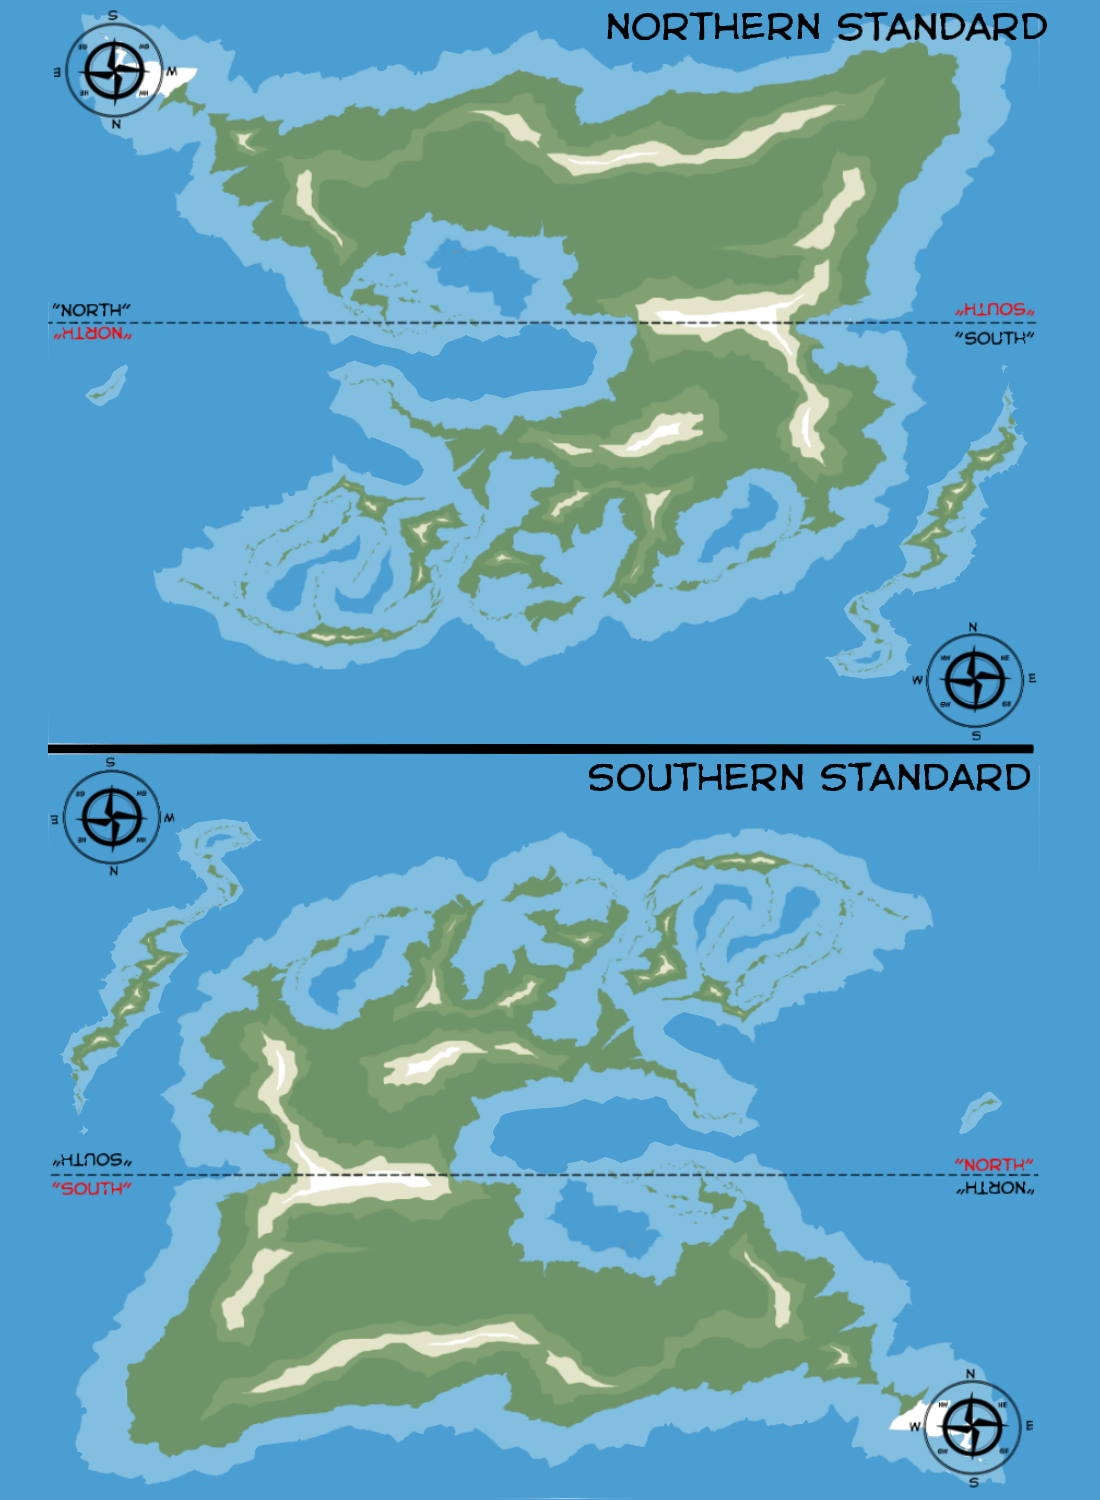 Map Standards Used In The Northern And Southern